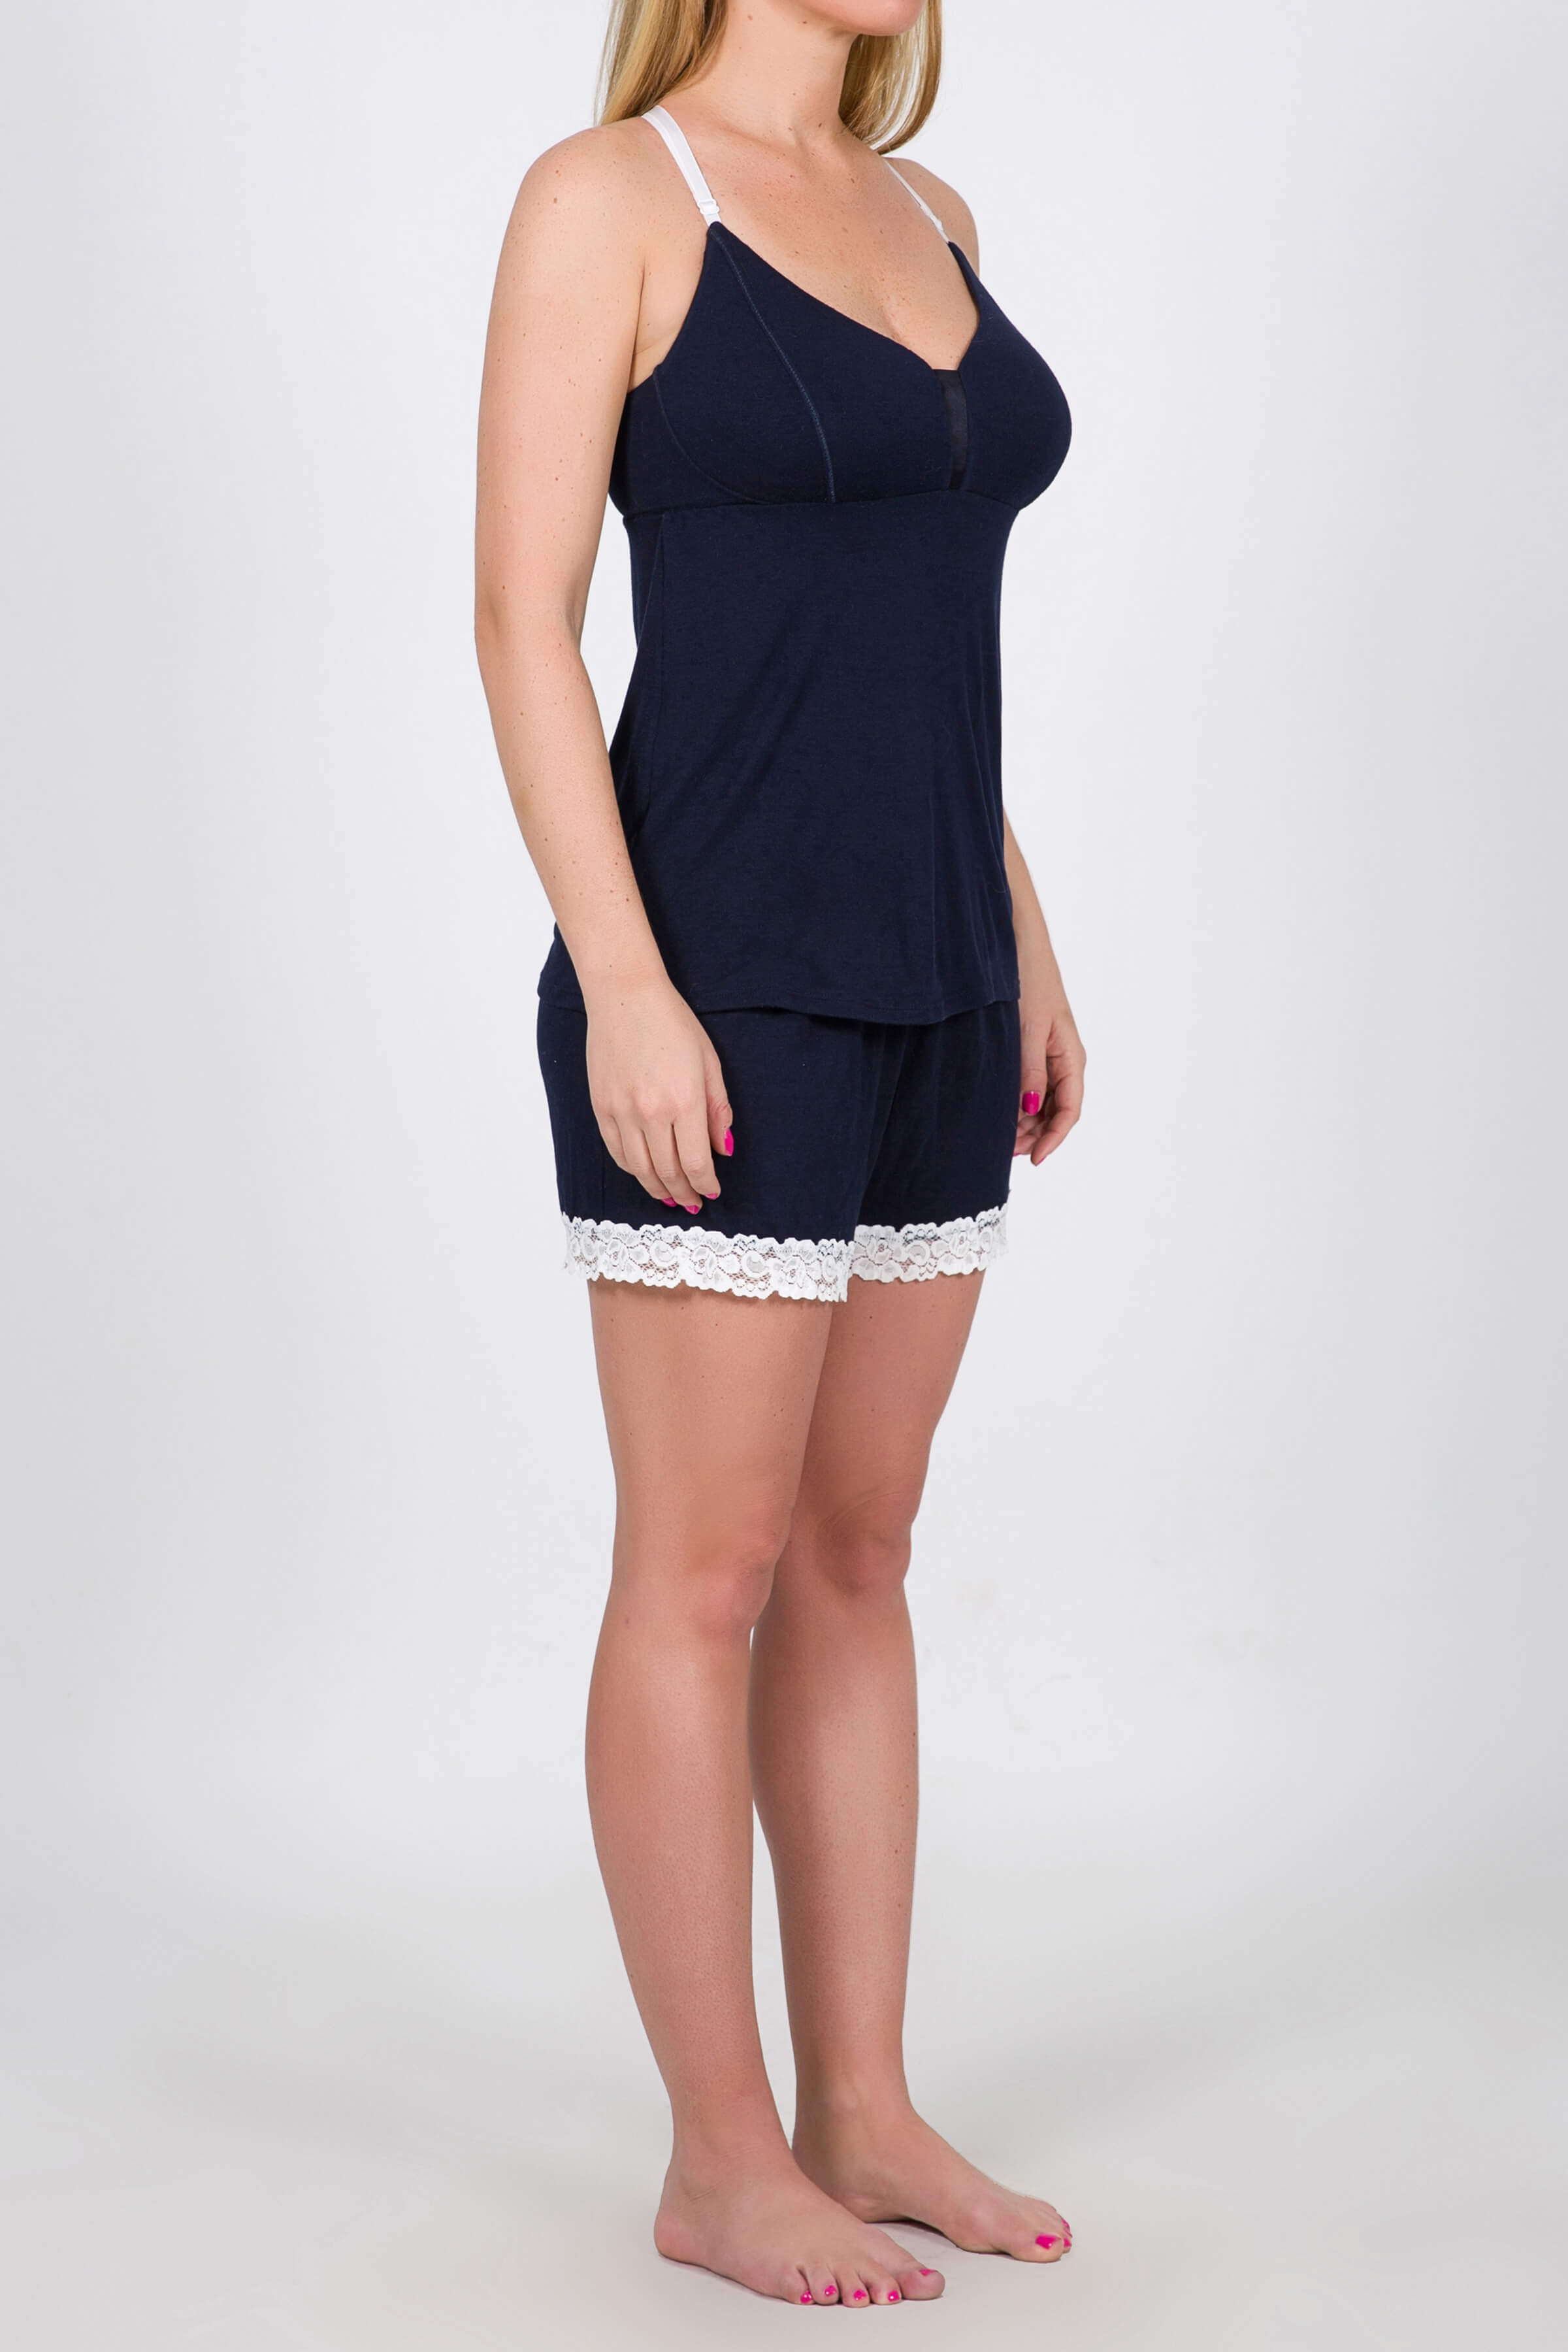 Cami and Boy Shorts set: Low in Stock